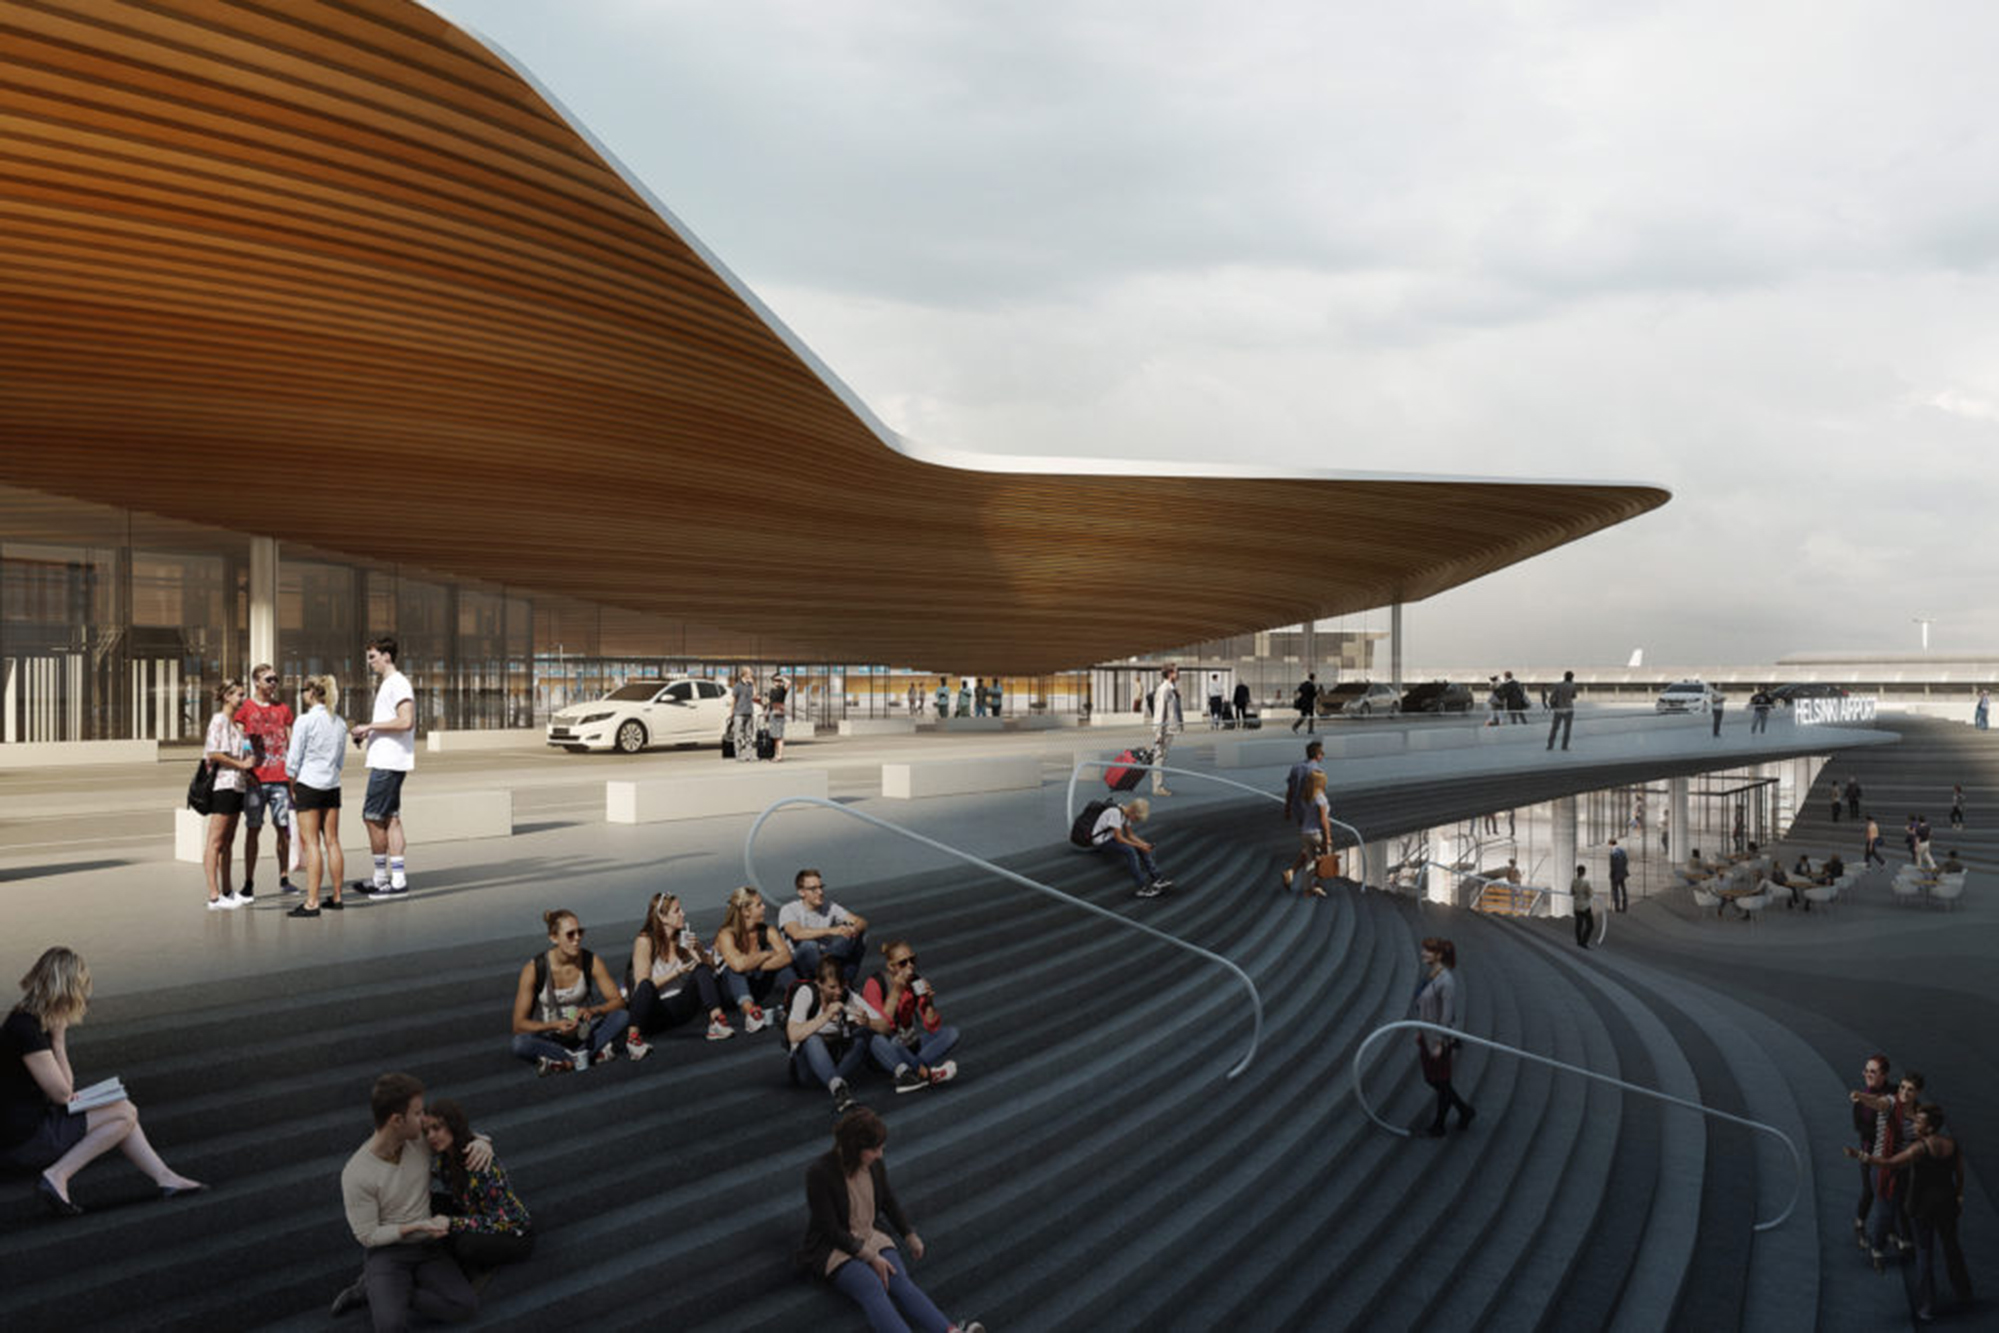 Helsinki Airport Terminal 2 Expansion And Renovation